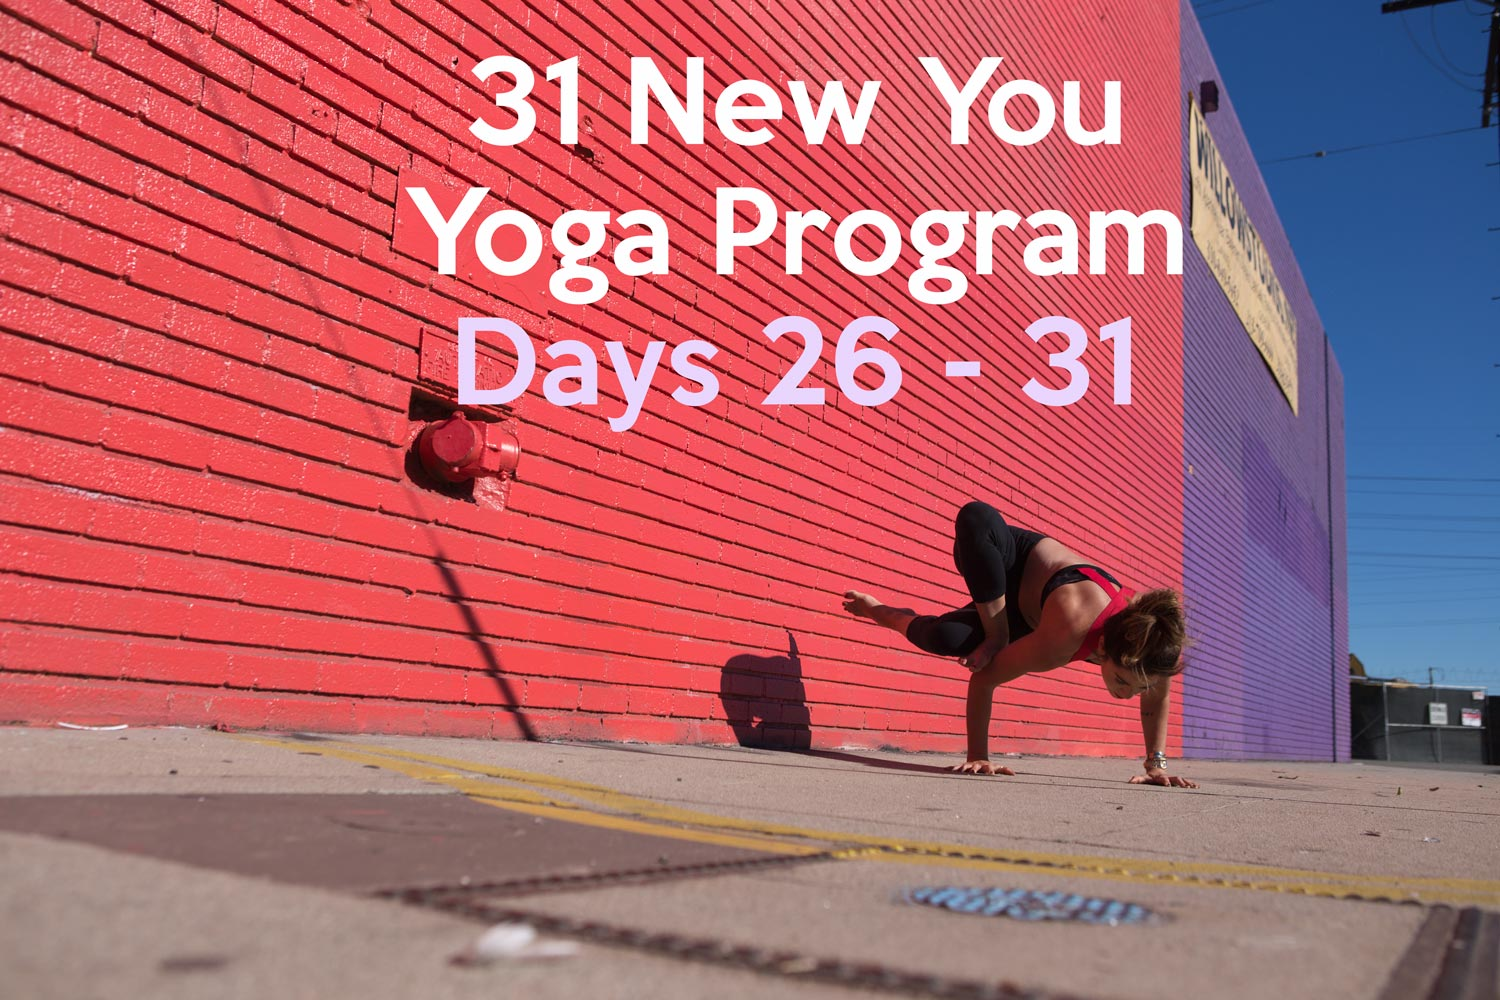 Pin it - Days 26 - 31 of the New You Yoga Program  Wearing:  alo yoga bra ,  lululemon leggings